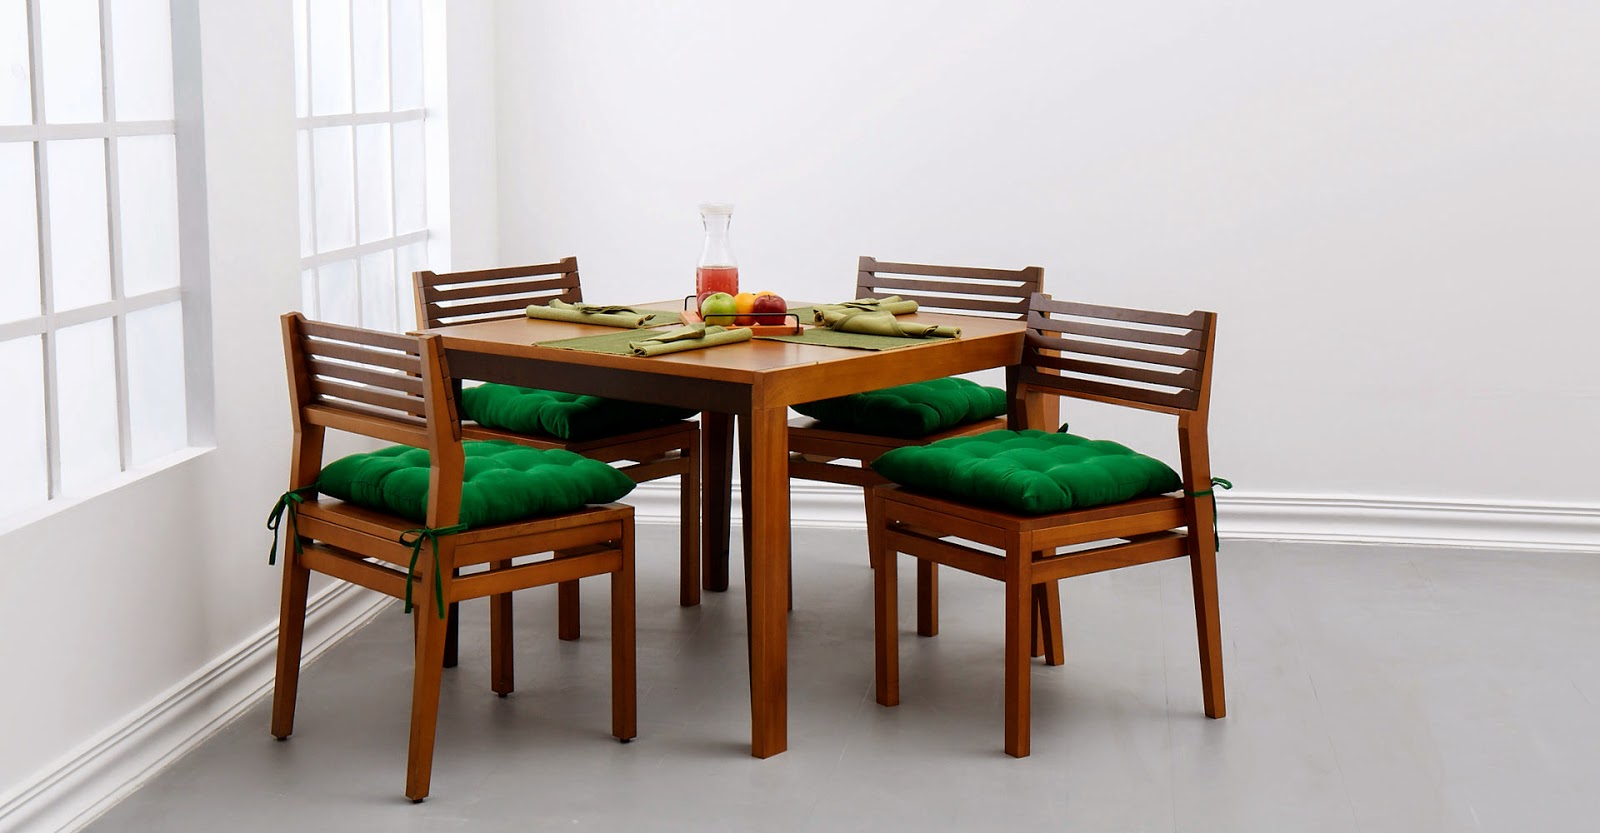 Renting dining furniture from Furlenco